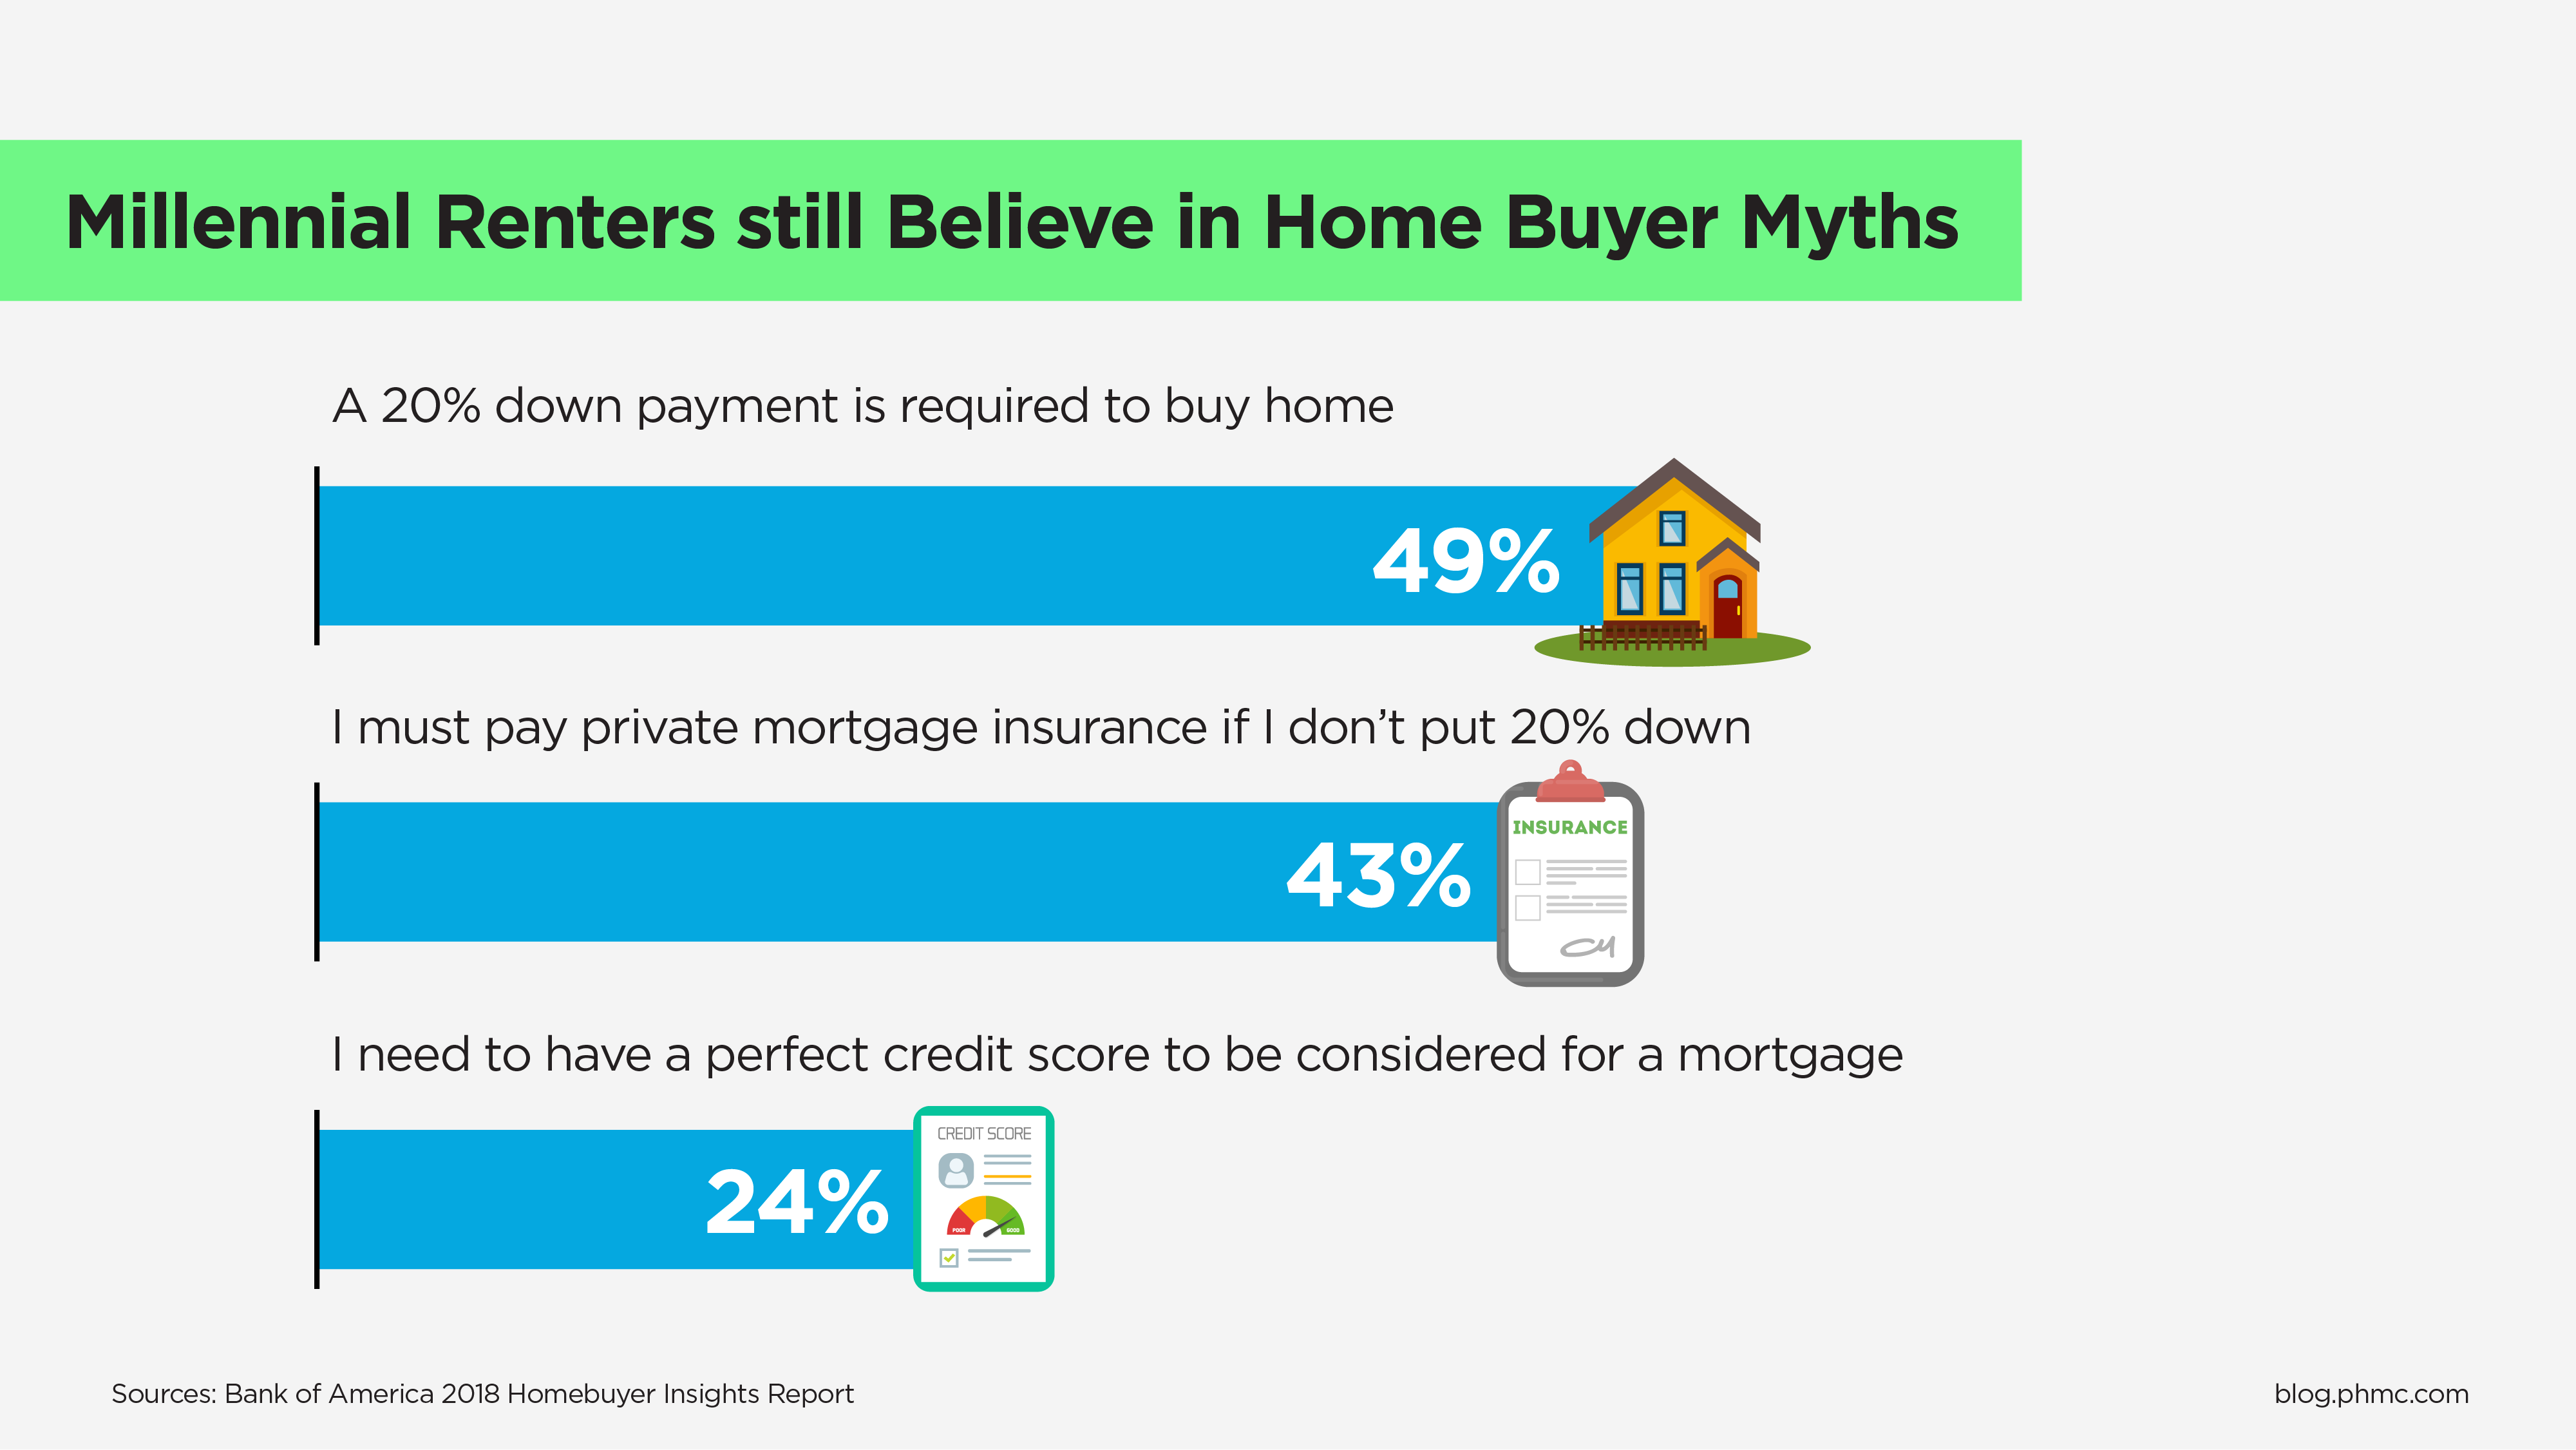 Millennial renters still believe in home buyer myths. 49% believe they must pay private mortgage insurance if they don't put 20% down. 24% think they need perfect credit to be considered for a mortgage.